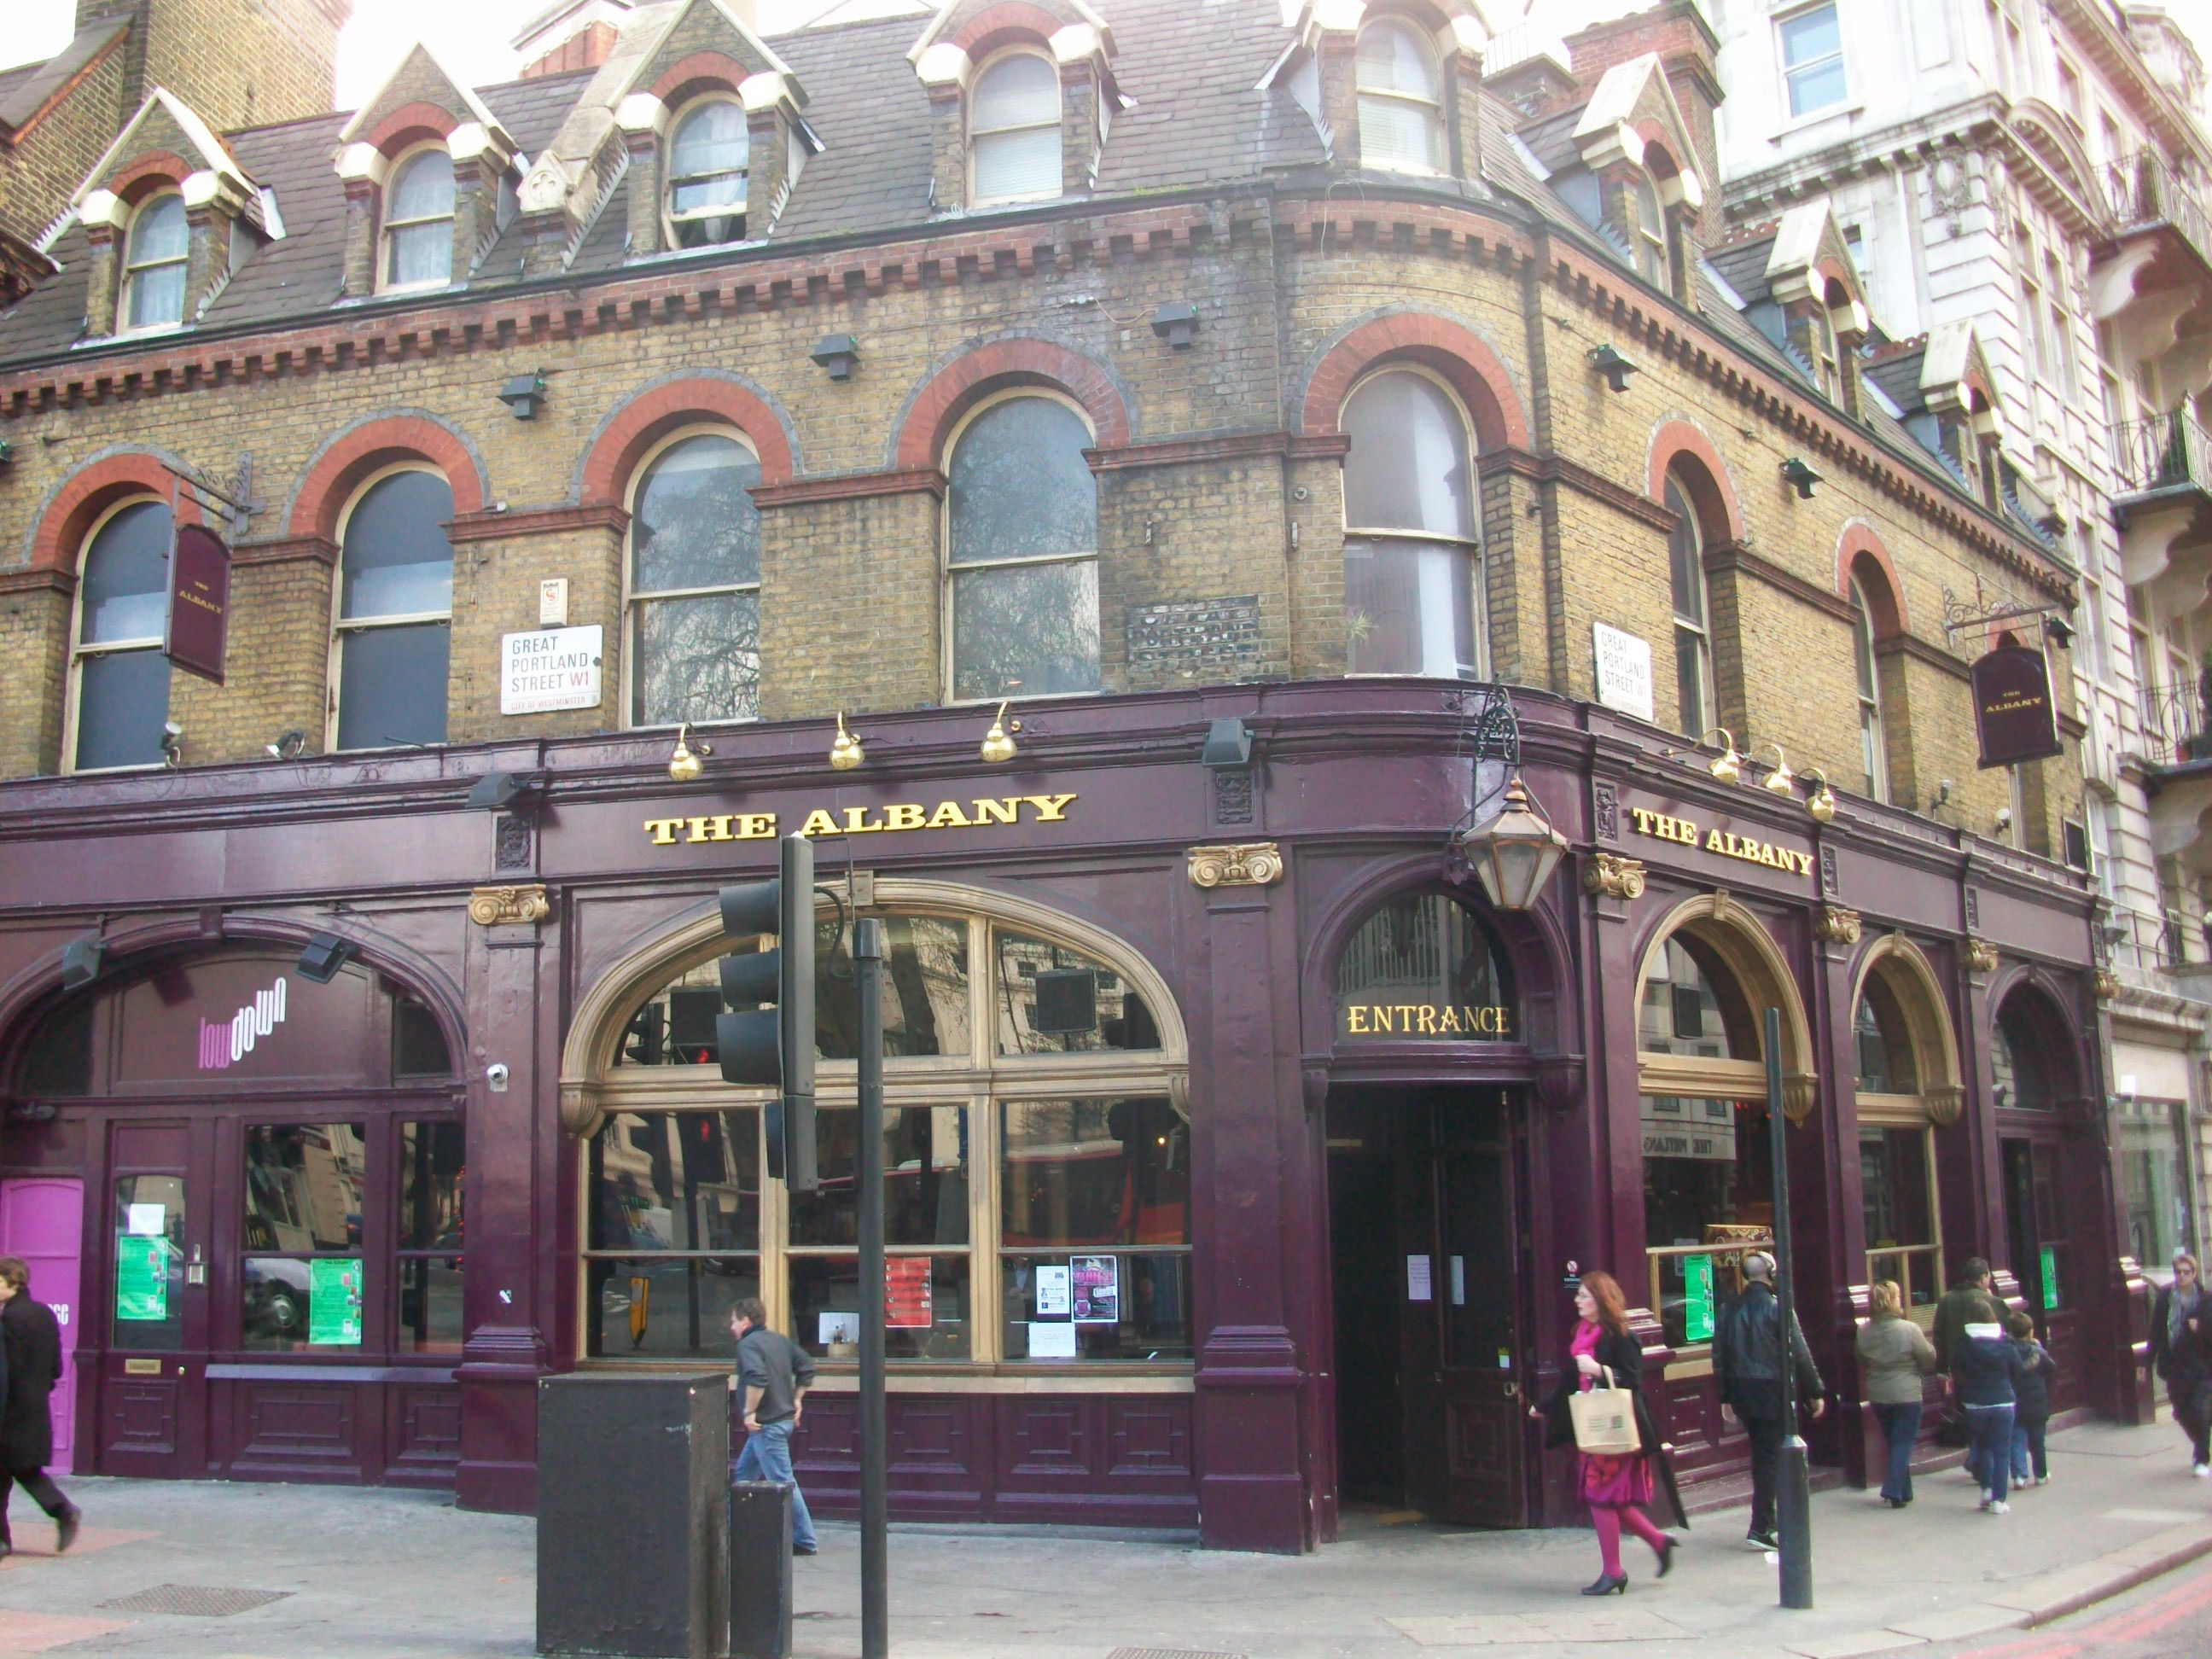 fitzrovia pubs  2  the albany  240 great portland street